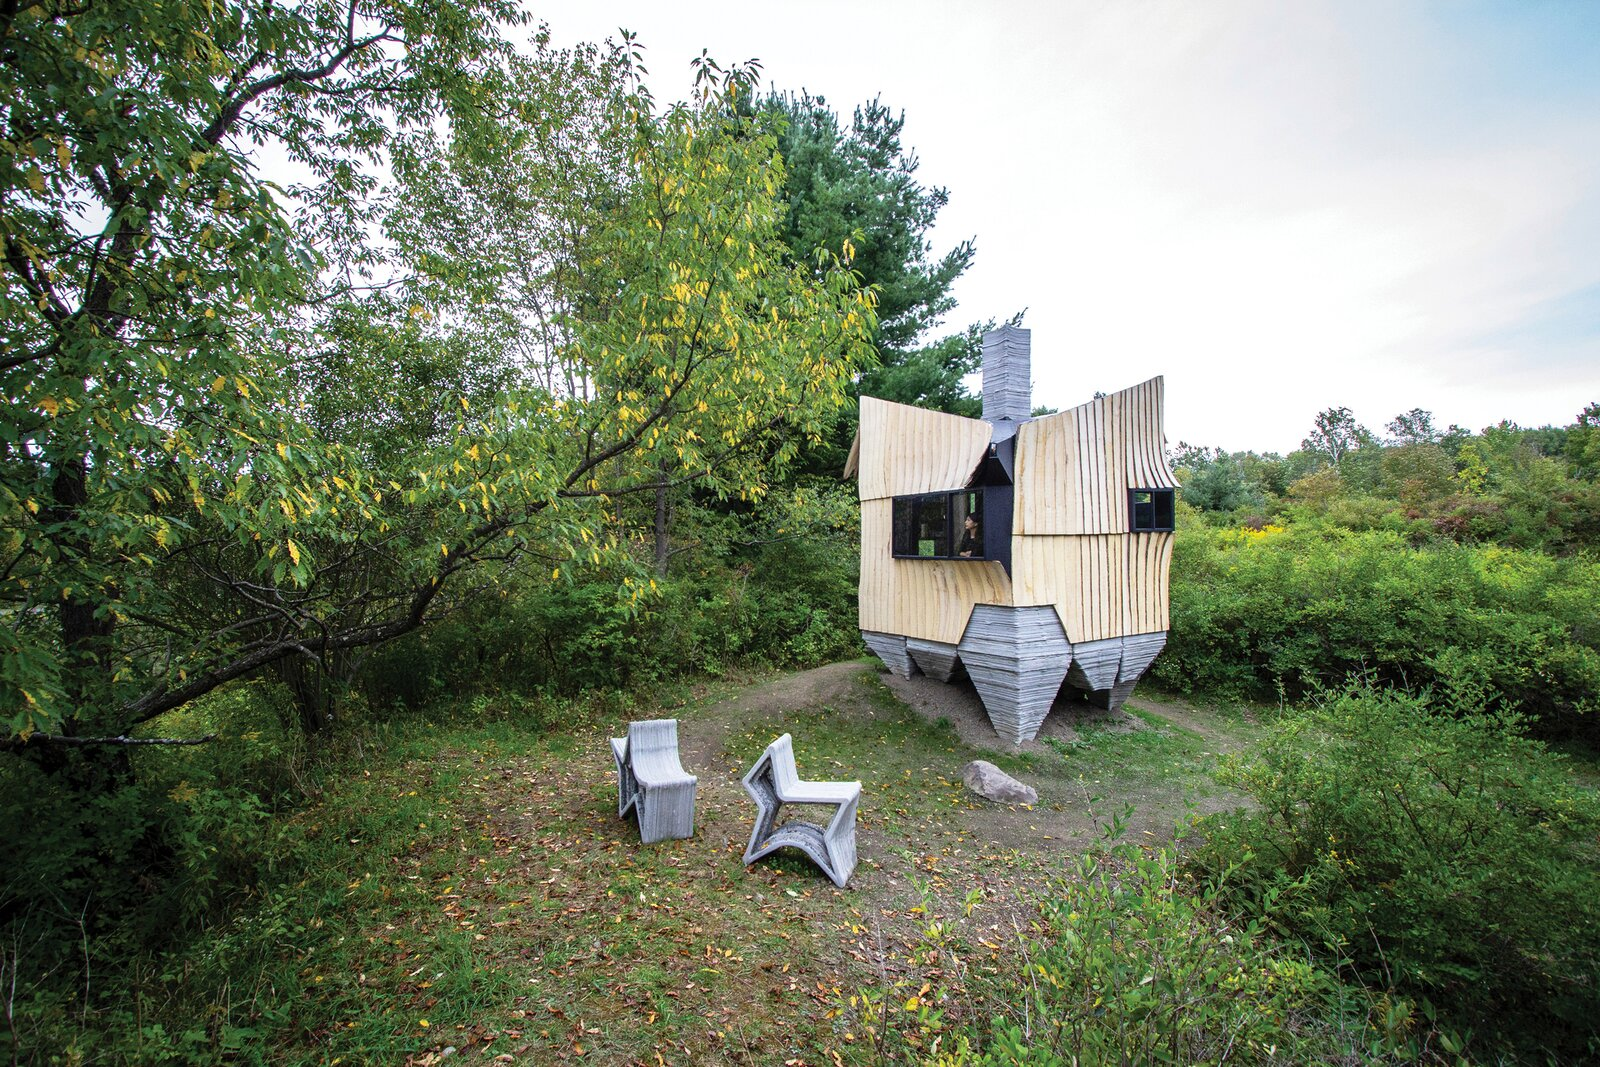 This Tiny 3D-Printed Cabin Makes a Big Statement About Sustainability (dwell.com)